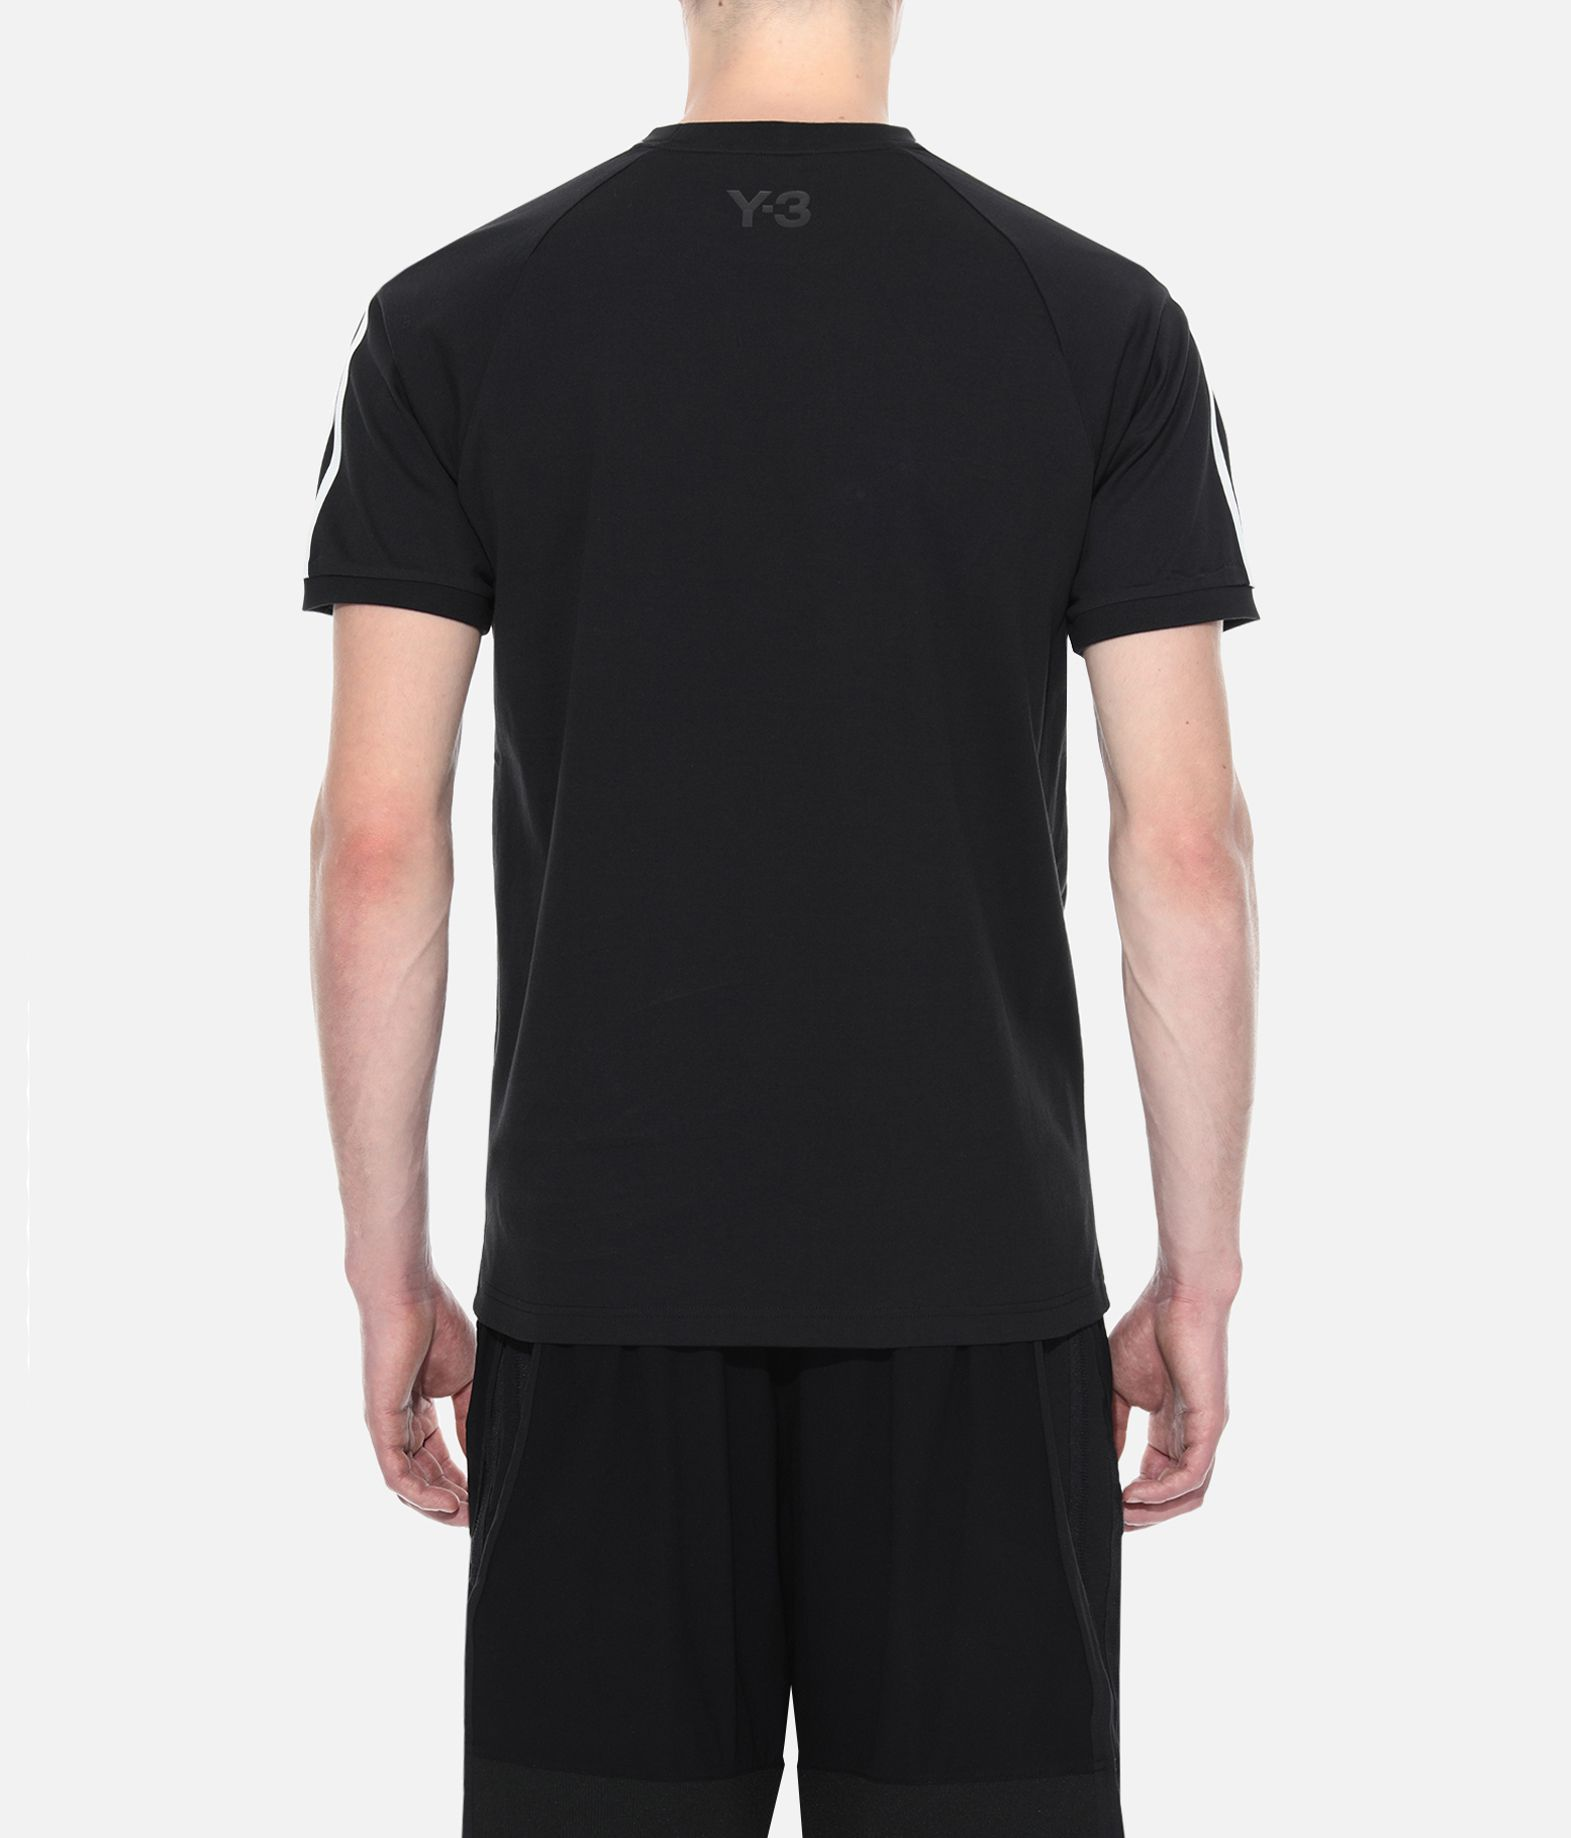 Y-3 Y-3 YOHJI TEE Short sleeve t-shirt Man d